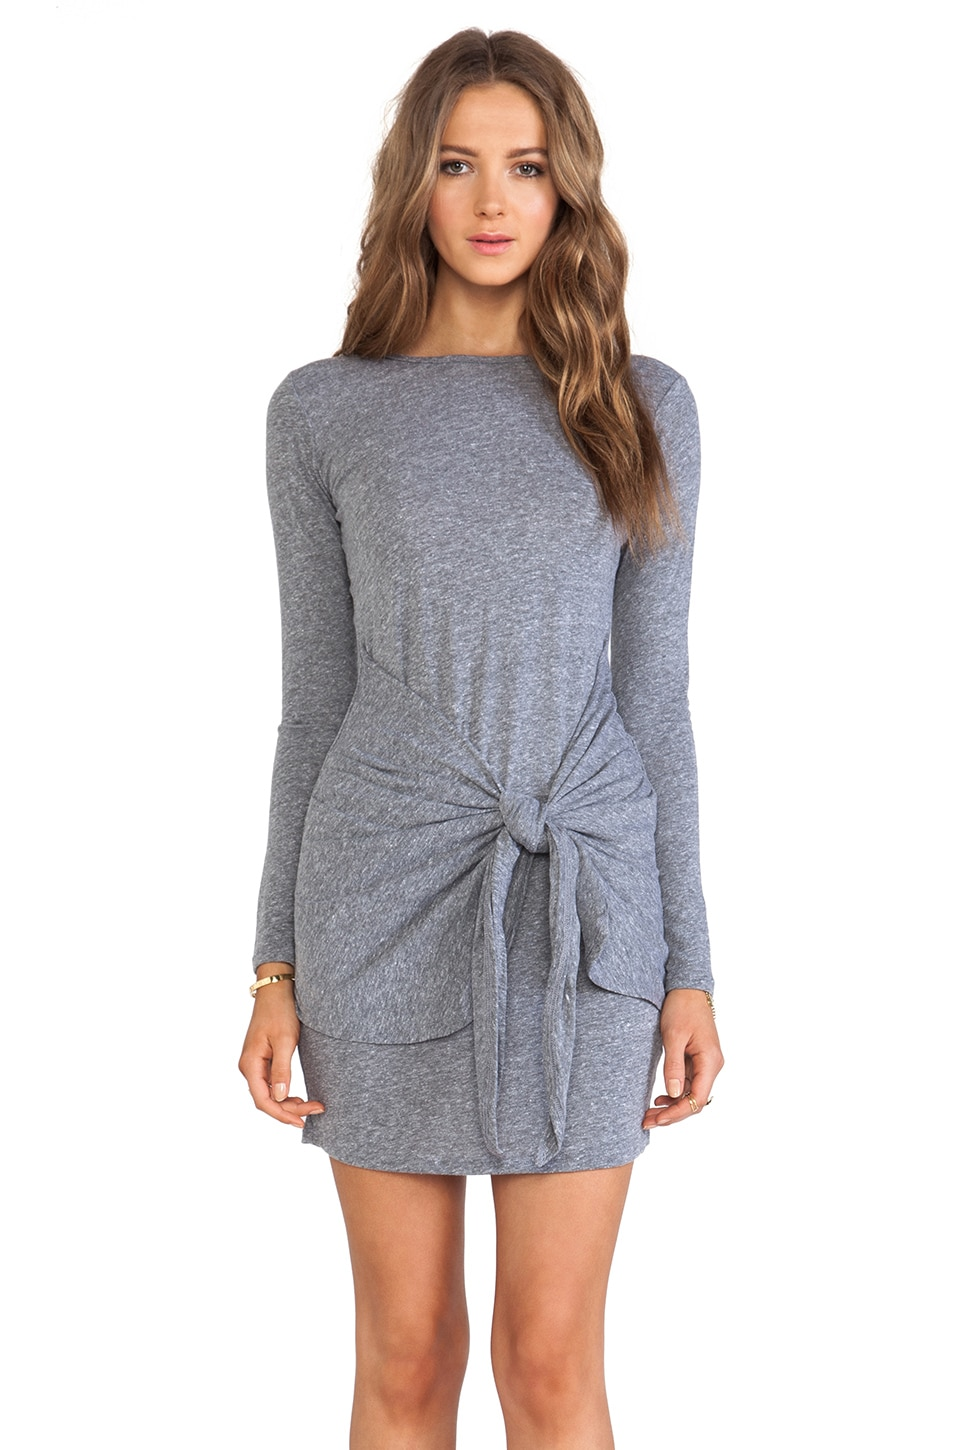 De Lacy DeLacy Drew Dress in Grey